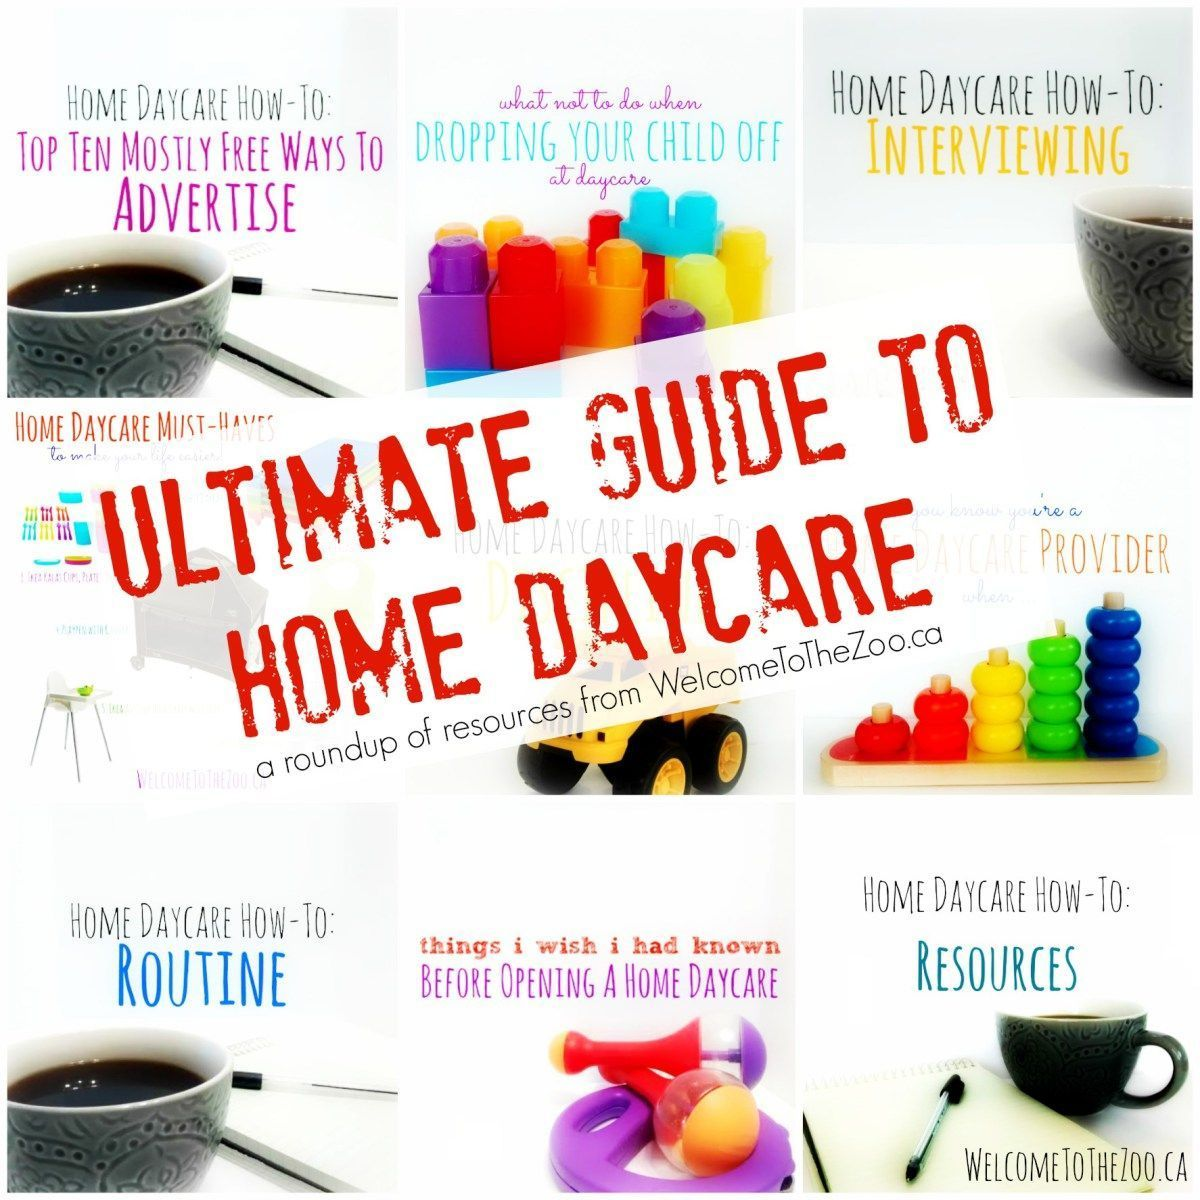 Running your own inhome daycare is one of the best ways